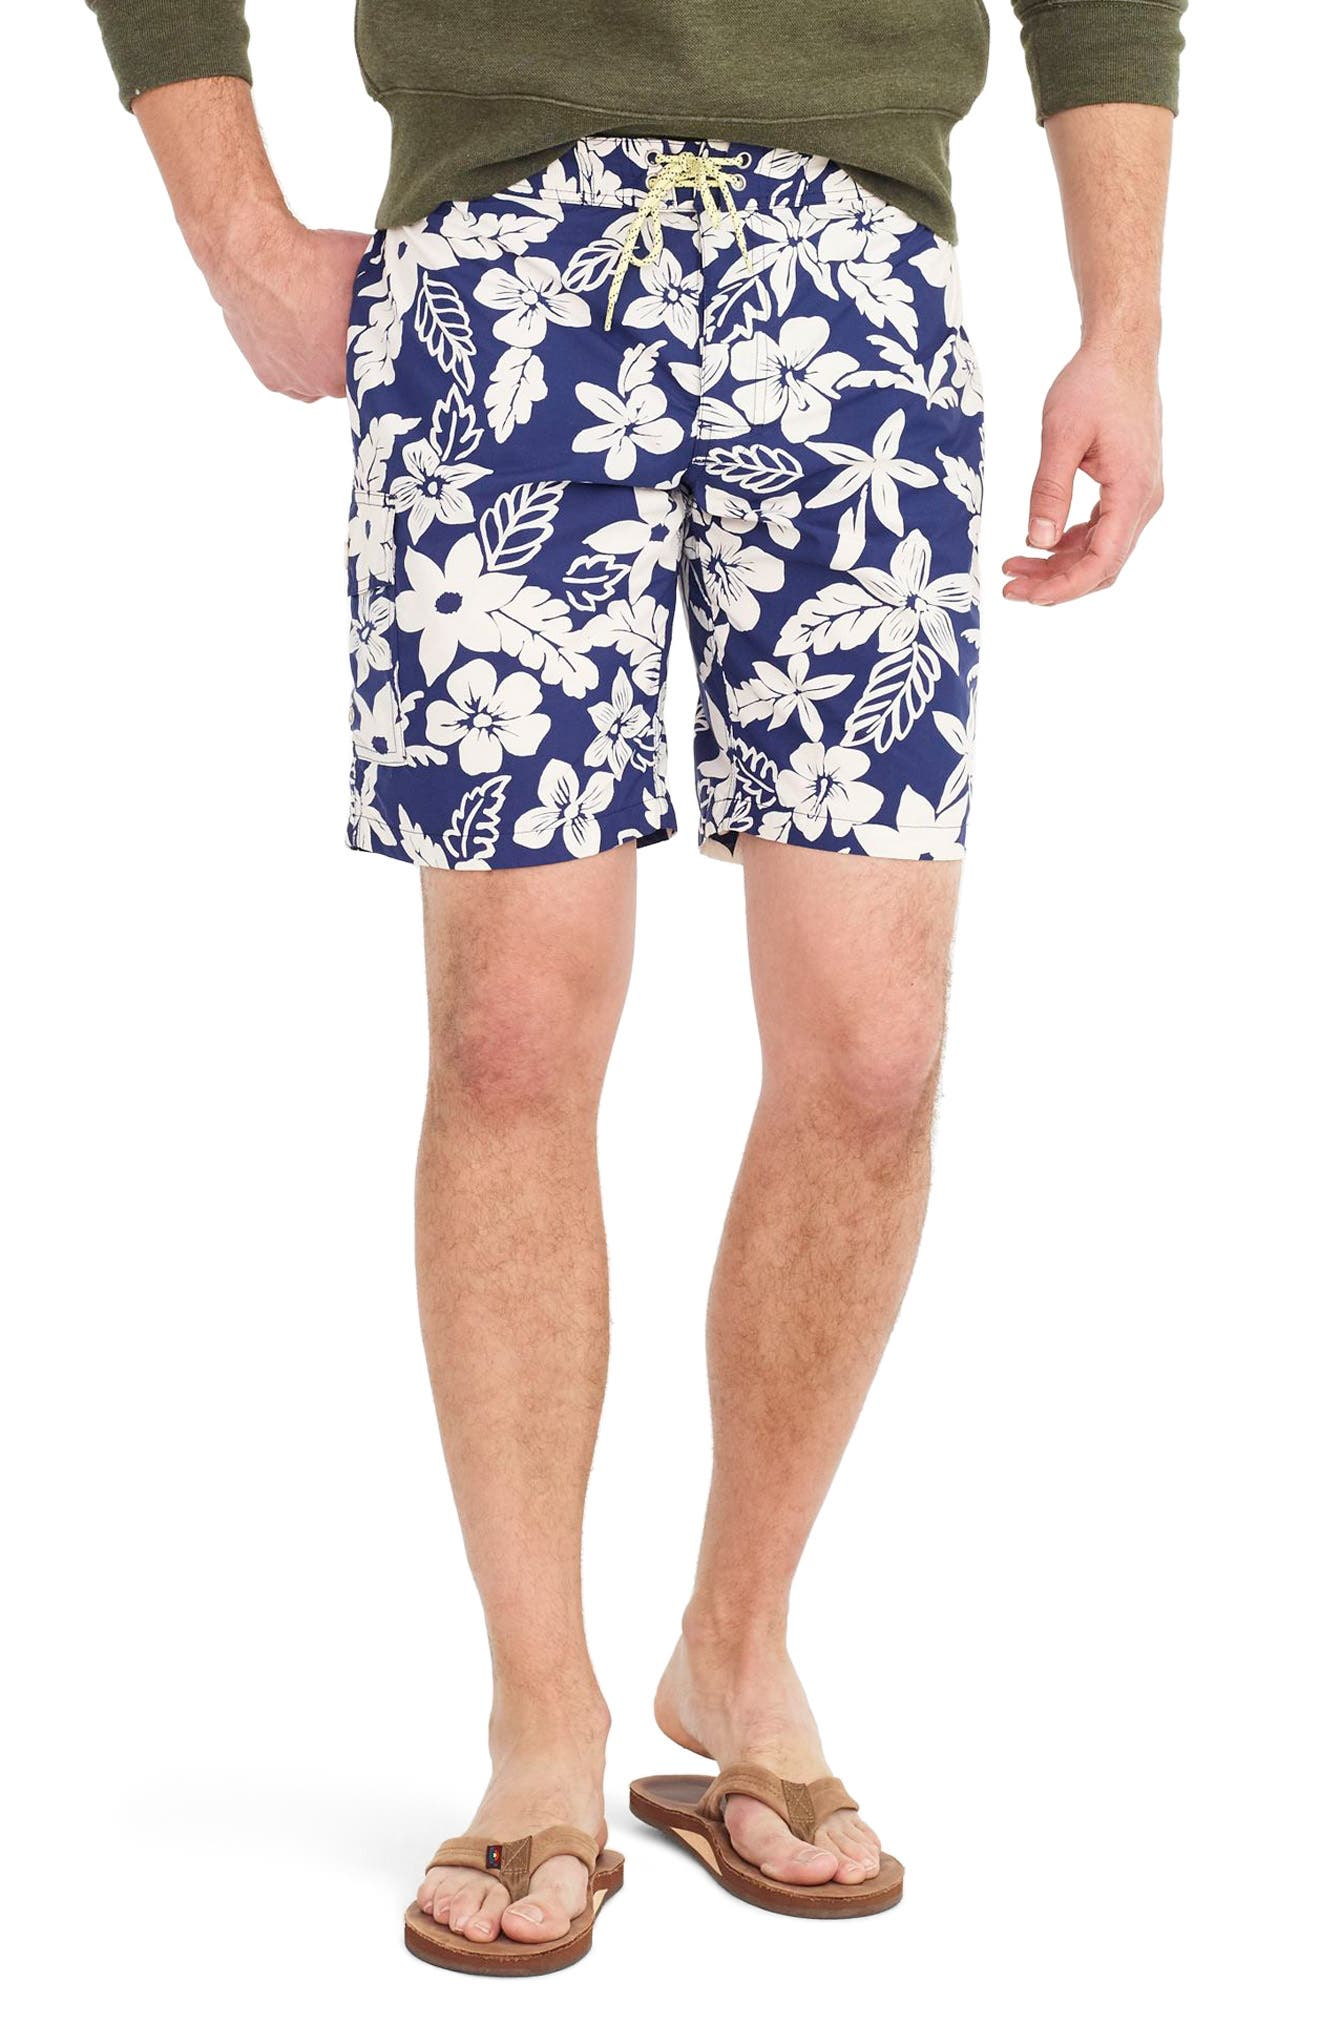 Alternate Image 1 Selected - J.Crew Floral Swim Trunks